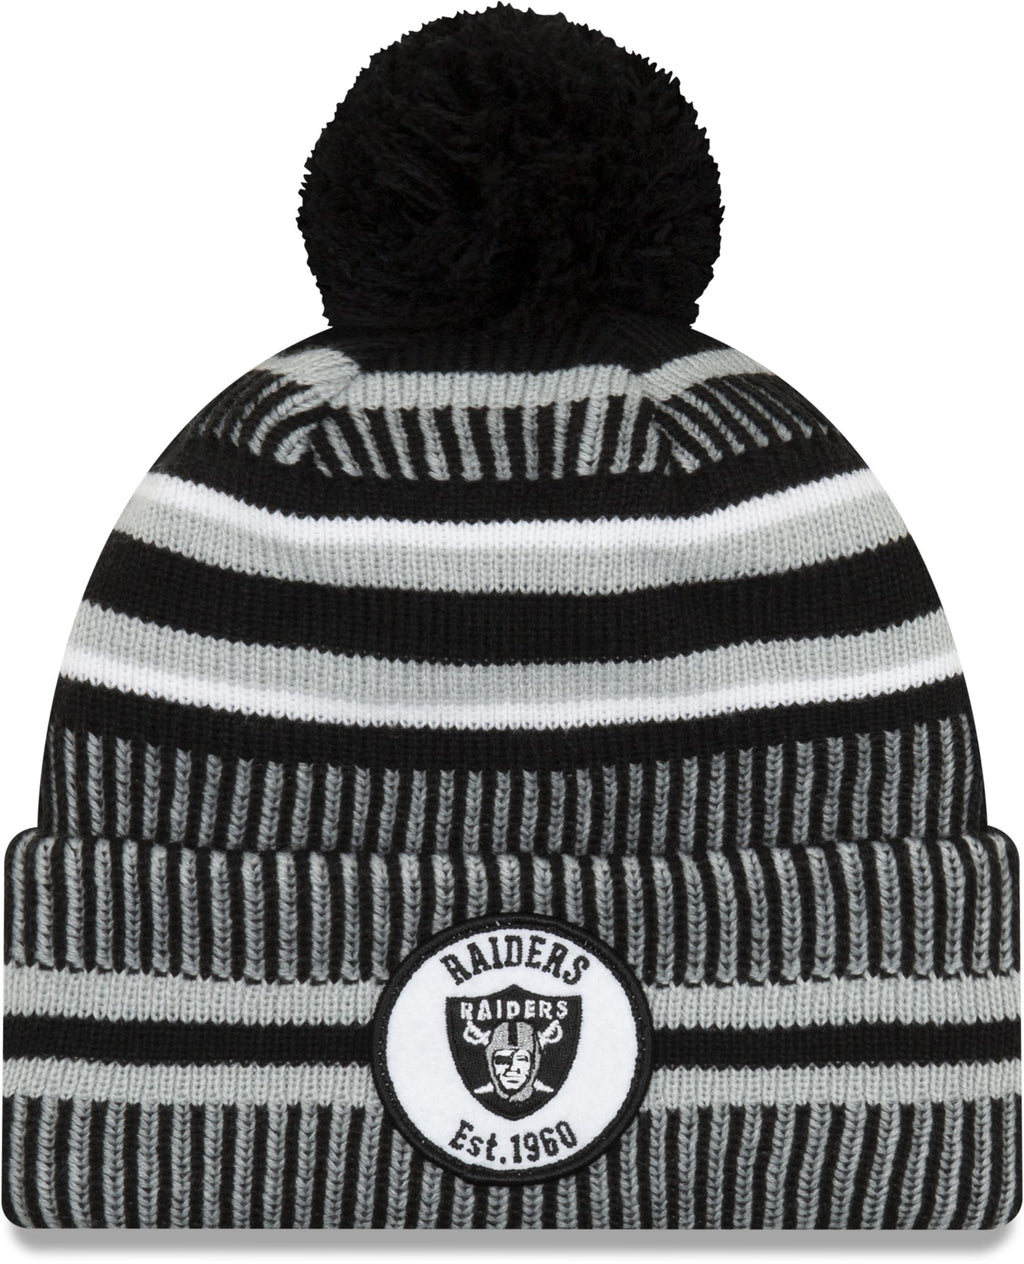 New Era ONF19 Cold Weather Oakland Raiders Bobble Beanie Hat Black